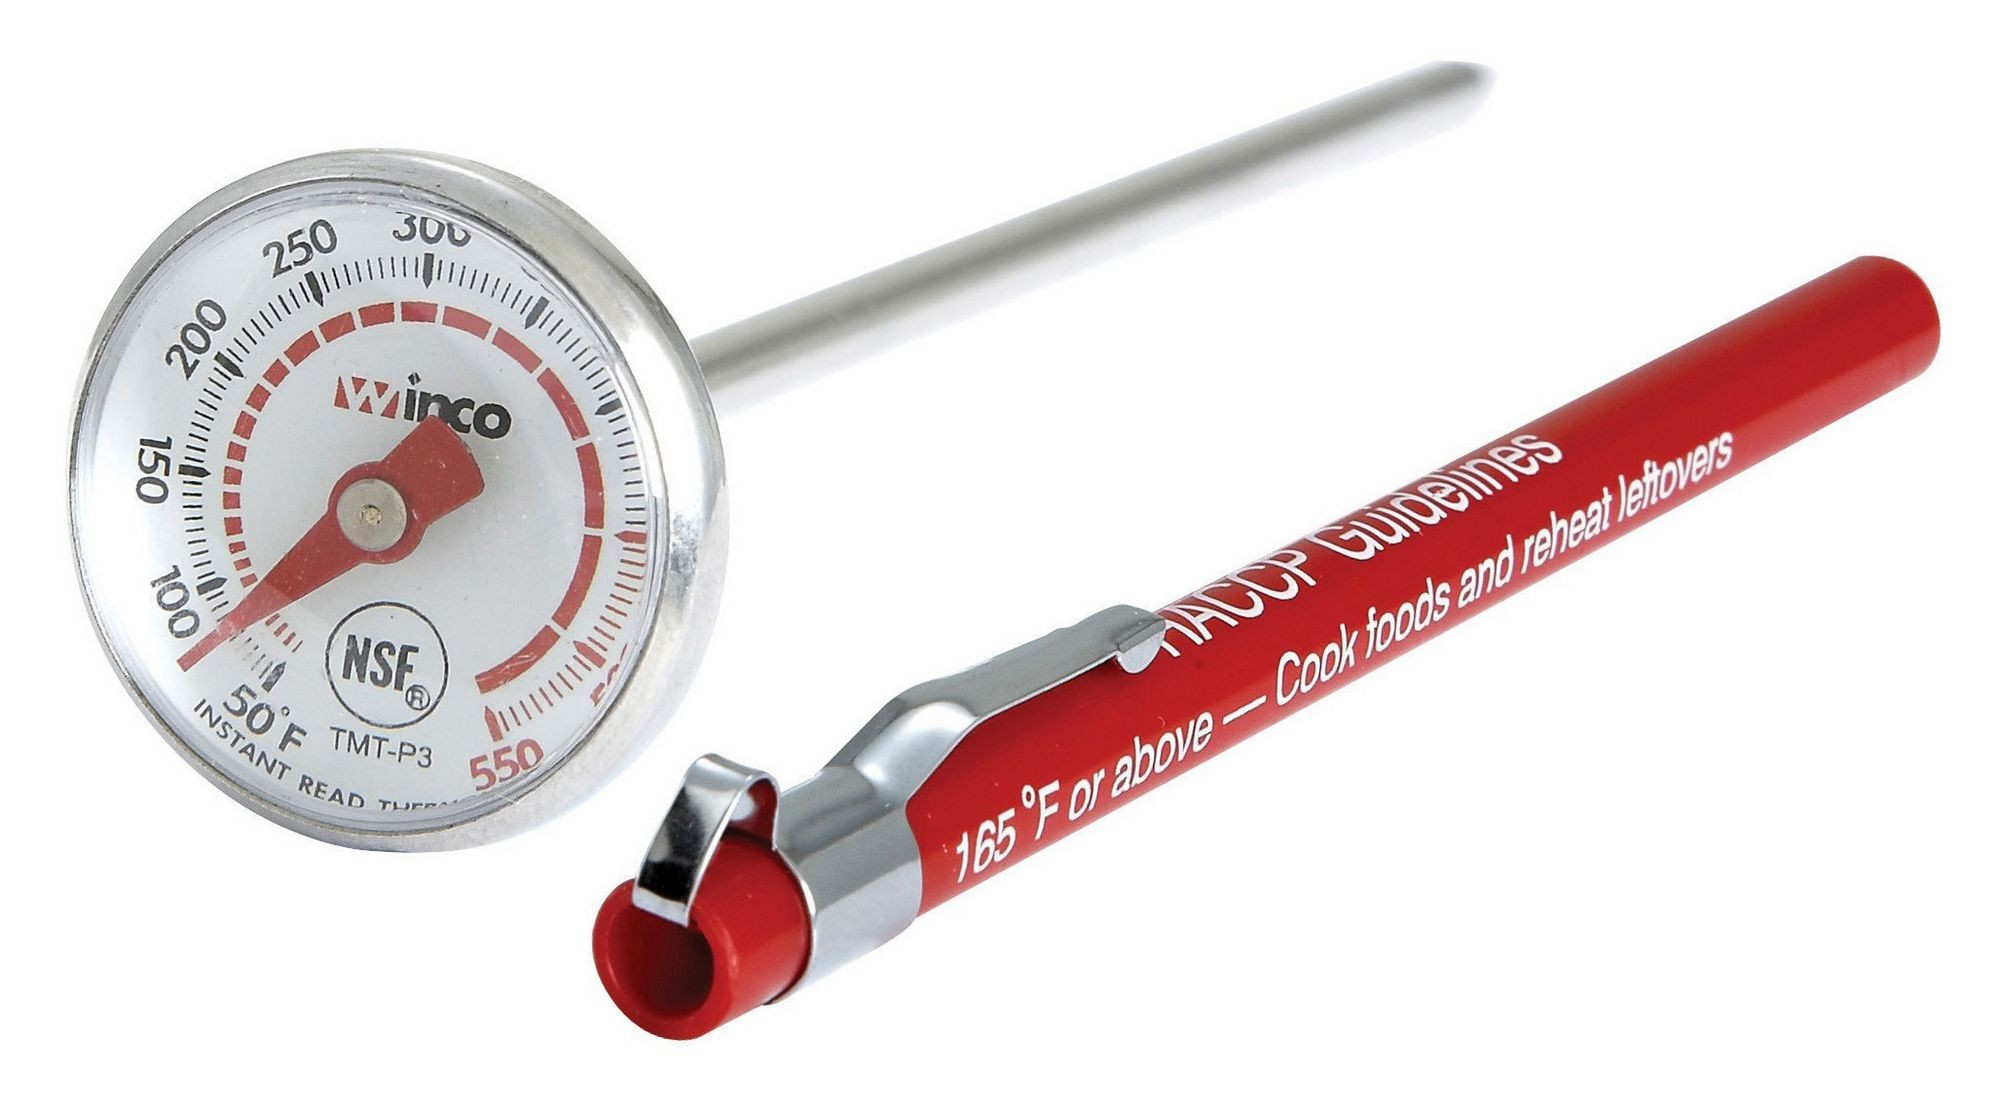 Dial-Type Pocket Test Thermometer With Case - 50F To 550F